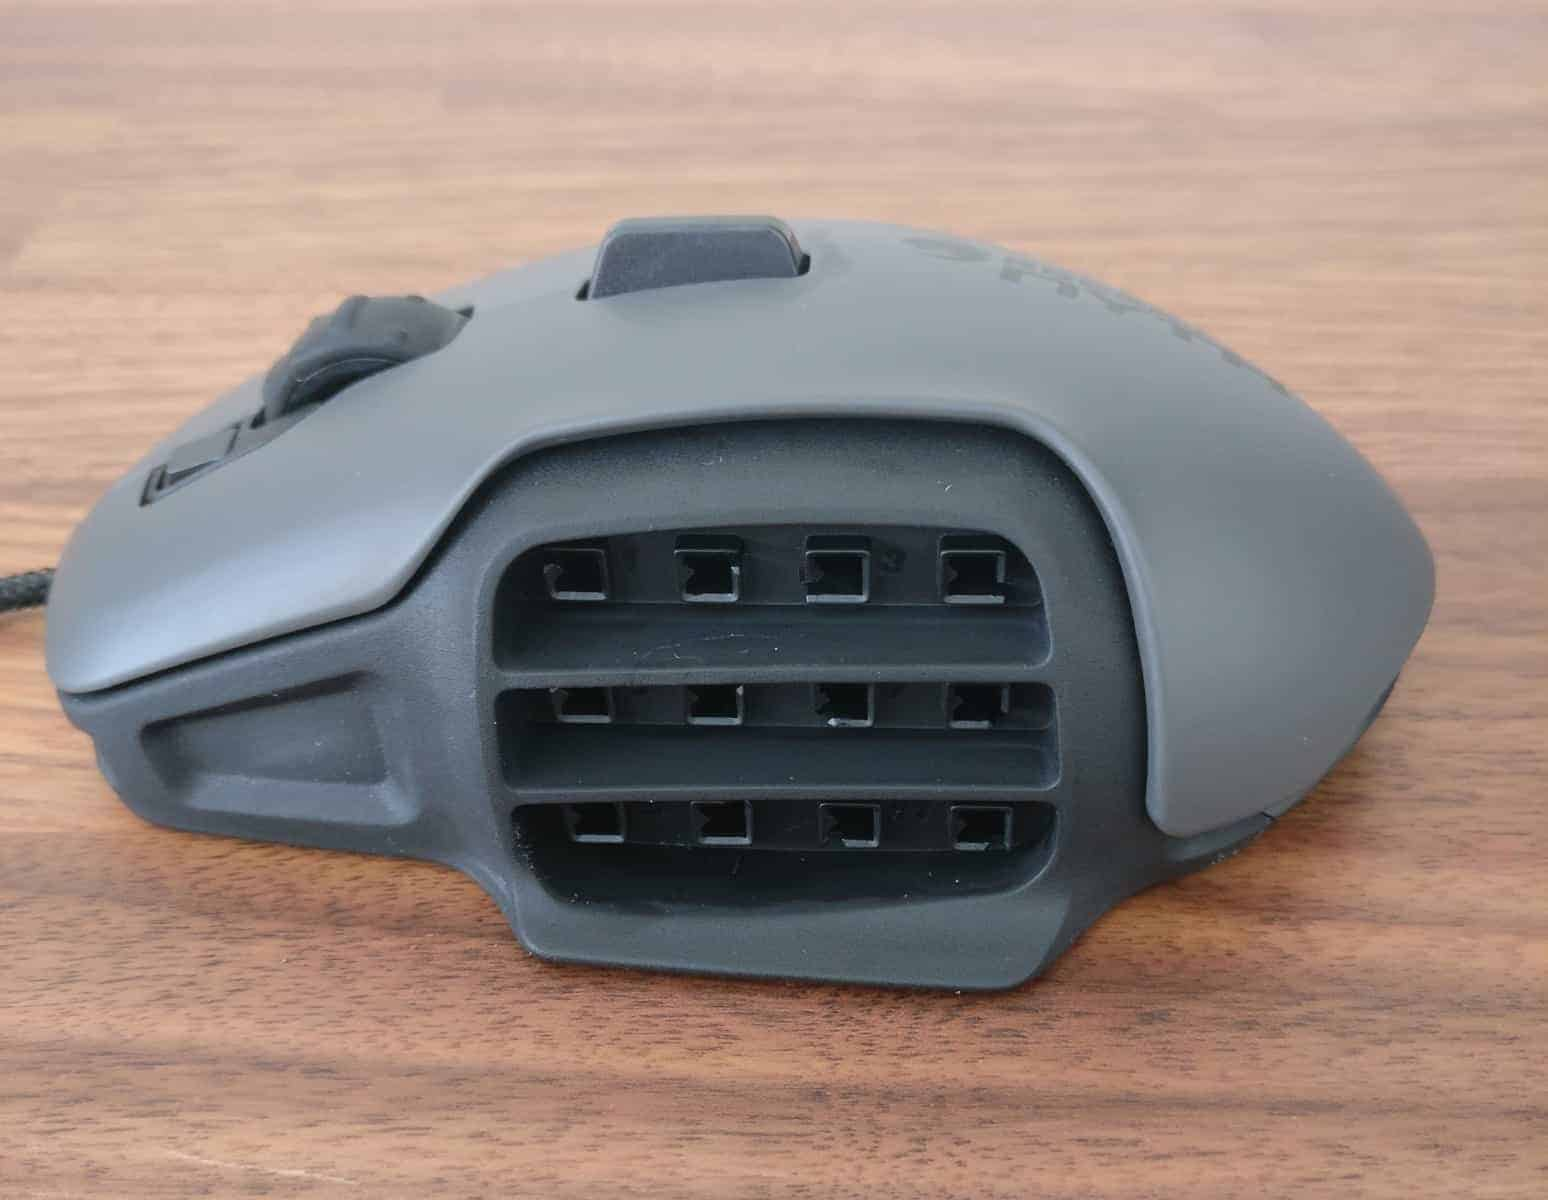 Roccat-Nyth-Photos28 Roccat Nyth Gaming Mouse Review